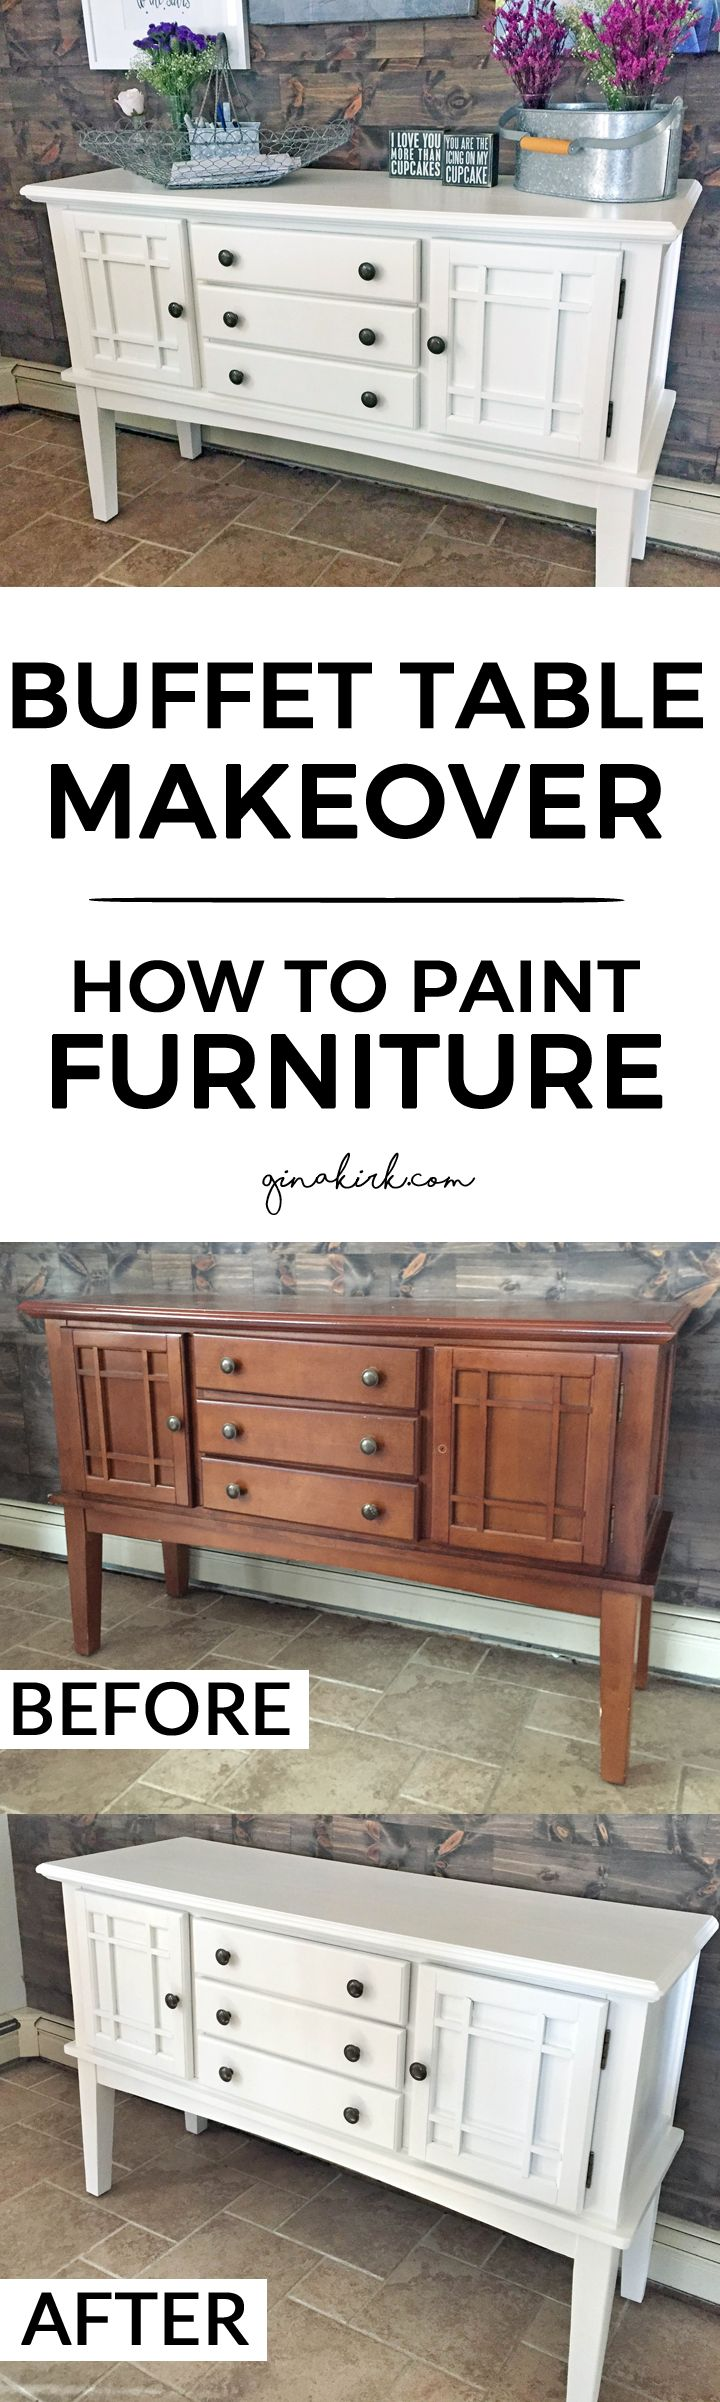 refinishing bedroom furniture ideas. best 25 dresser refinish ideas on pinterest redone dressers white wood and restored refinishing bedroom furniture d